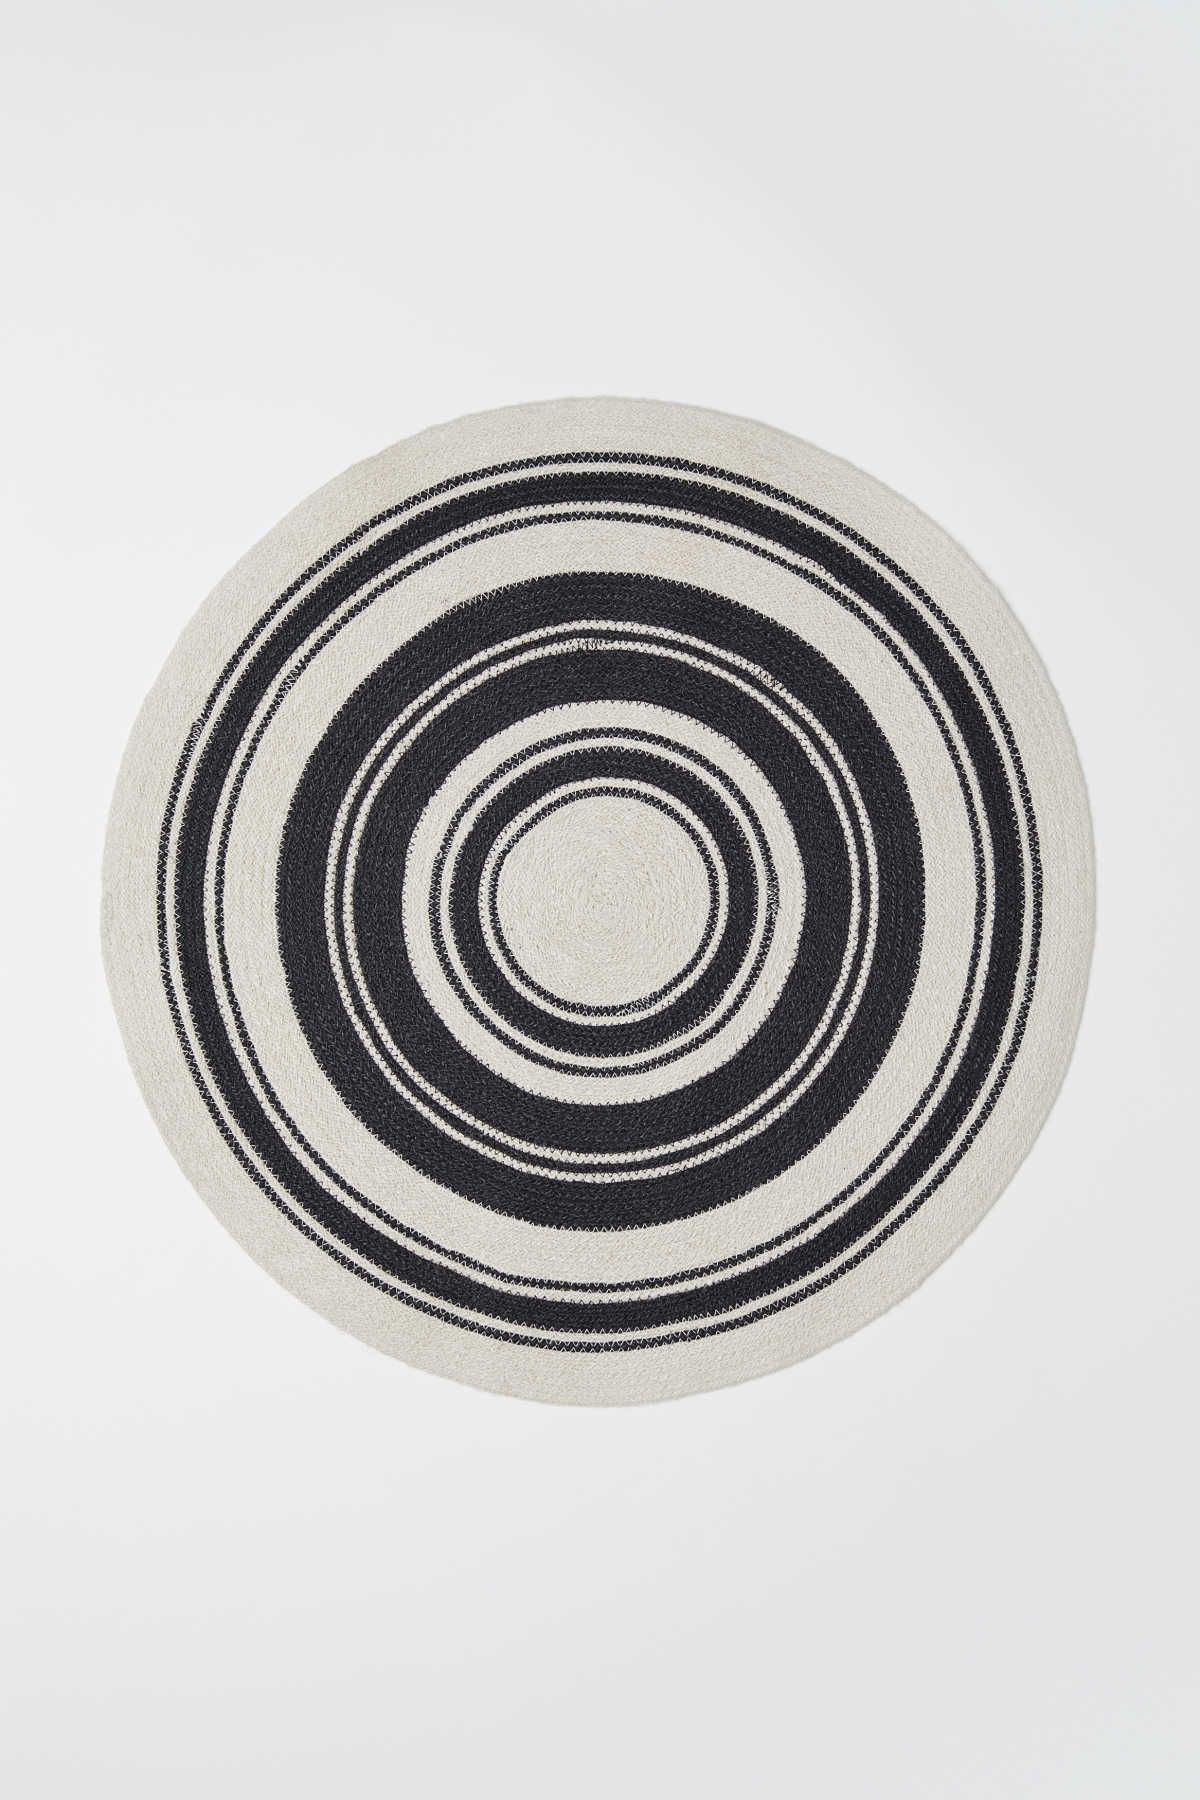 Natural White Black Round Bath Mat In Jute With Contrasting Seams Non Slip Protection At Back Diameter 27 1 2 In Badematte Jute Badematten